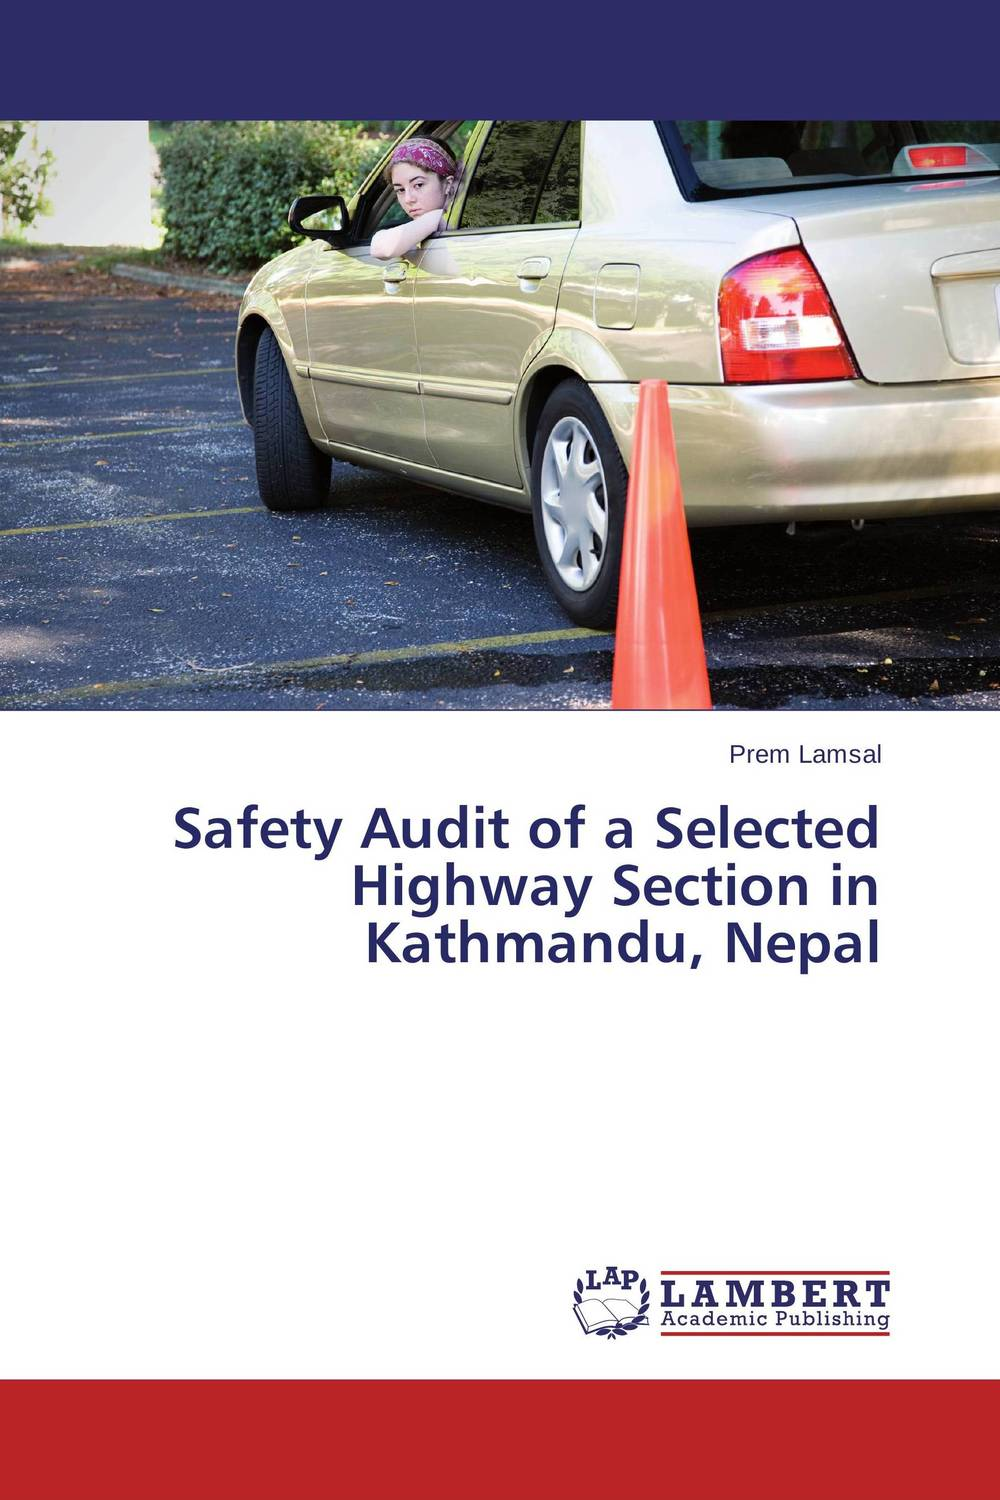 Safety Audit of a Selected Highway Section in Kathmandu, Nepal online master kess v5 017 v2 23 ktag v7 020 v2 23 no tokens limit kess 5 017 k tag k tag 7 020 ecu programmer dhl free